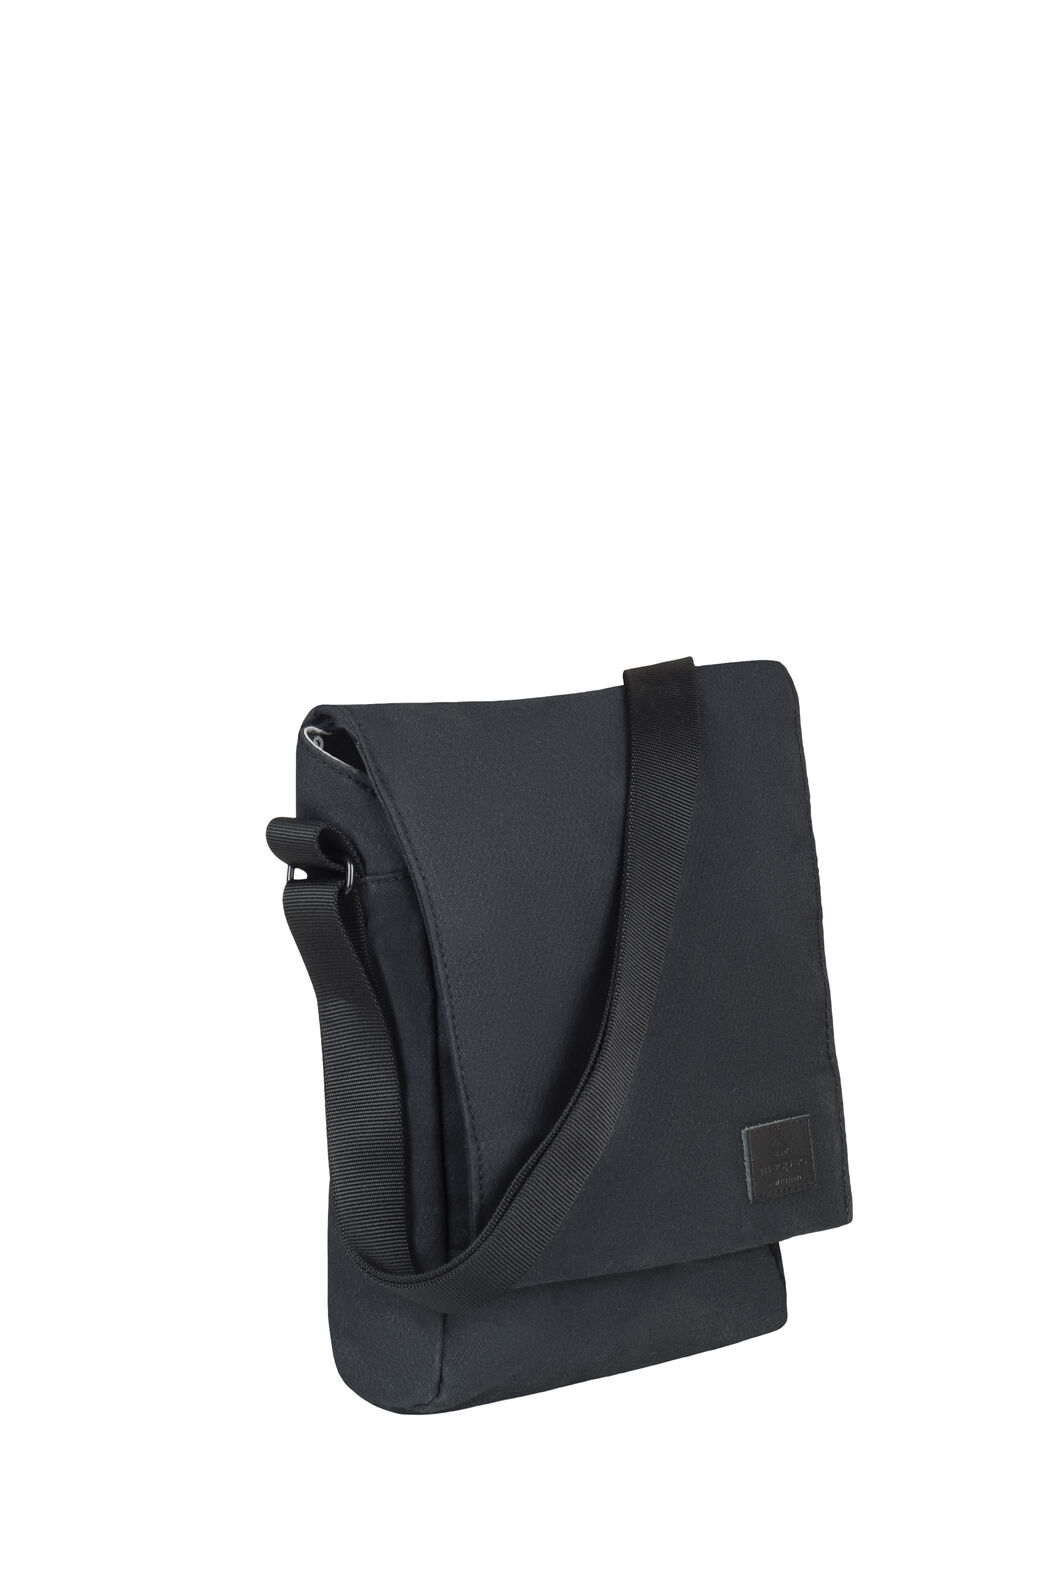 Macpac Rendezvous Satchel, Black, hi-res